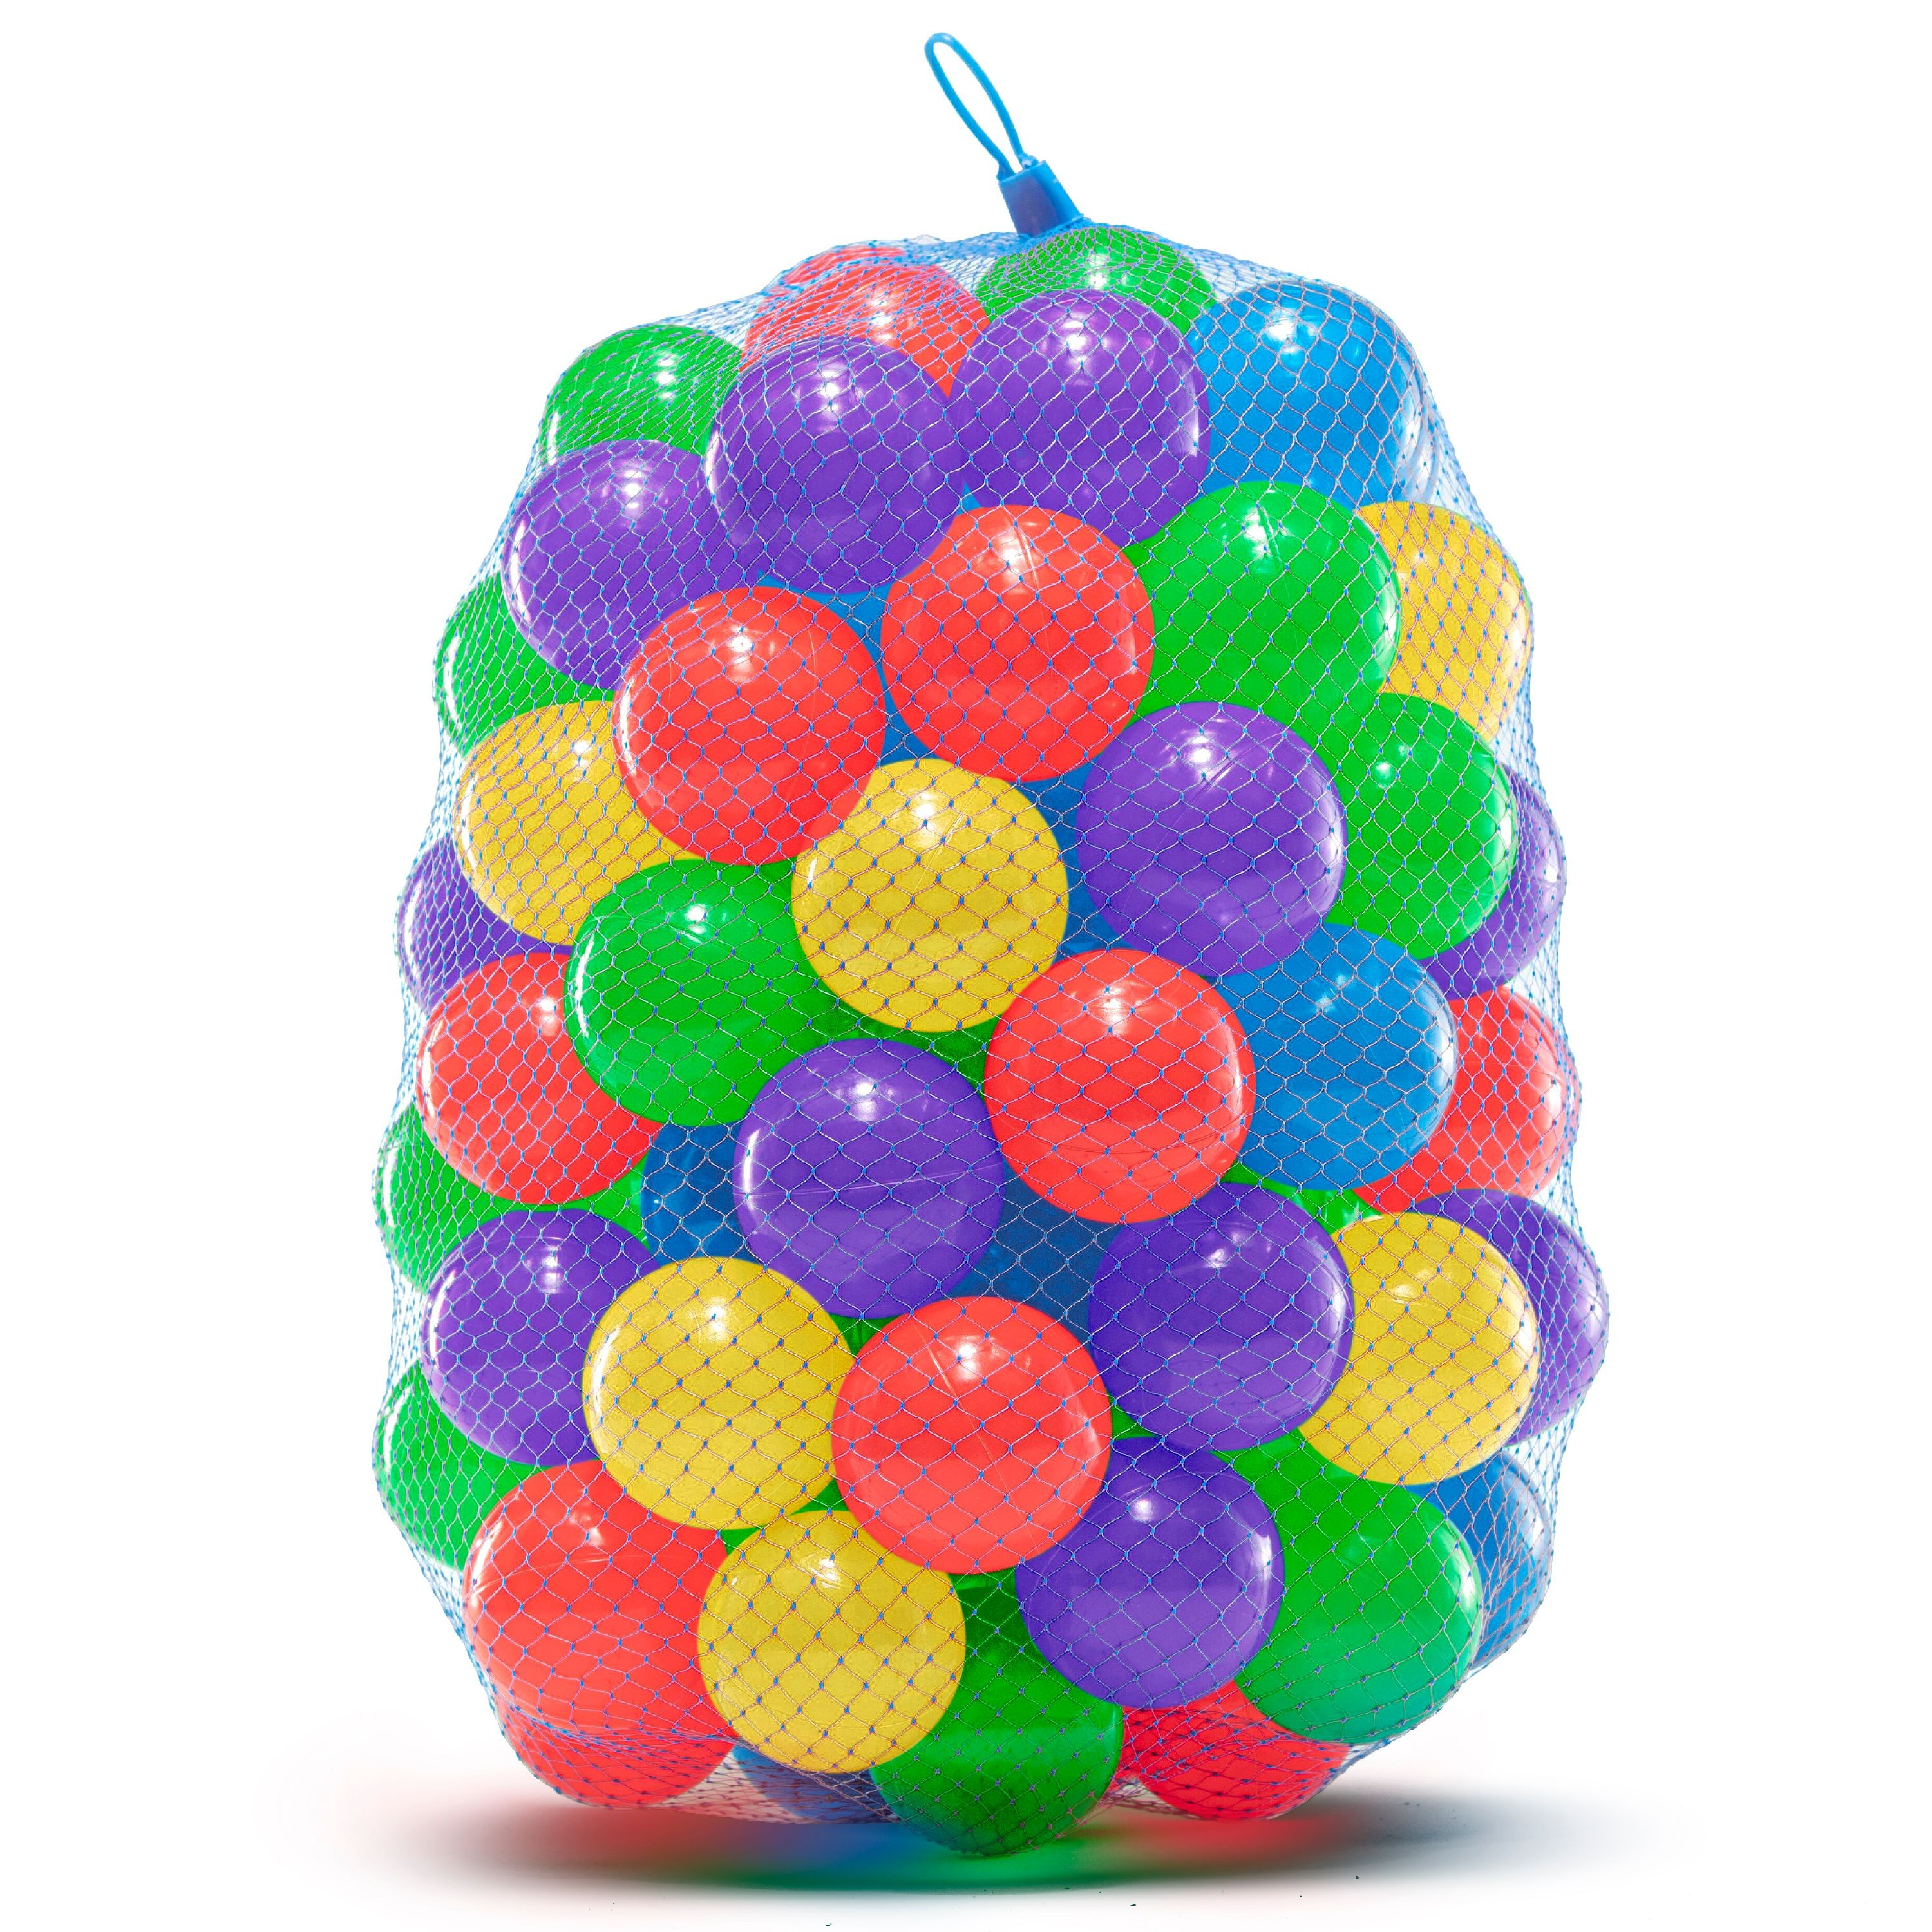 100 Soft Plastic Ball Pit Balls for Trampoline, Play Tent, Ball Pools, Indoor & Outdoor Play | Crush Proof, Non-Toxic